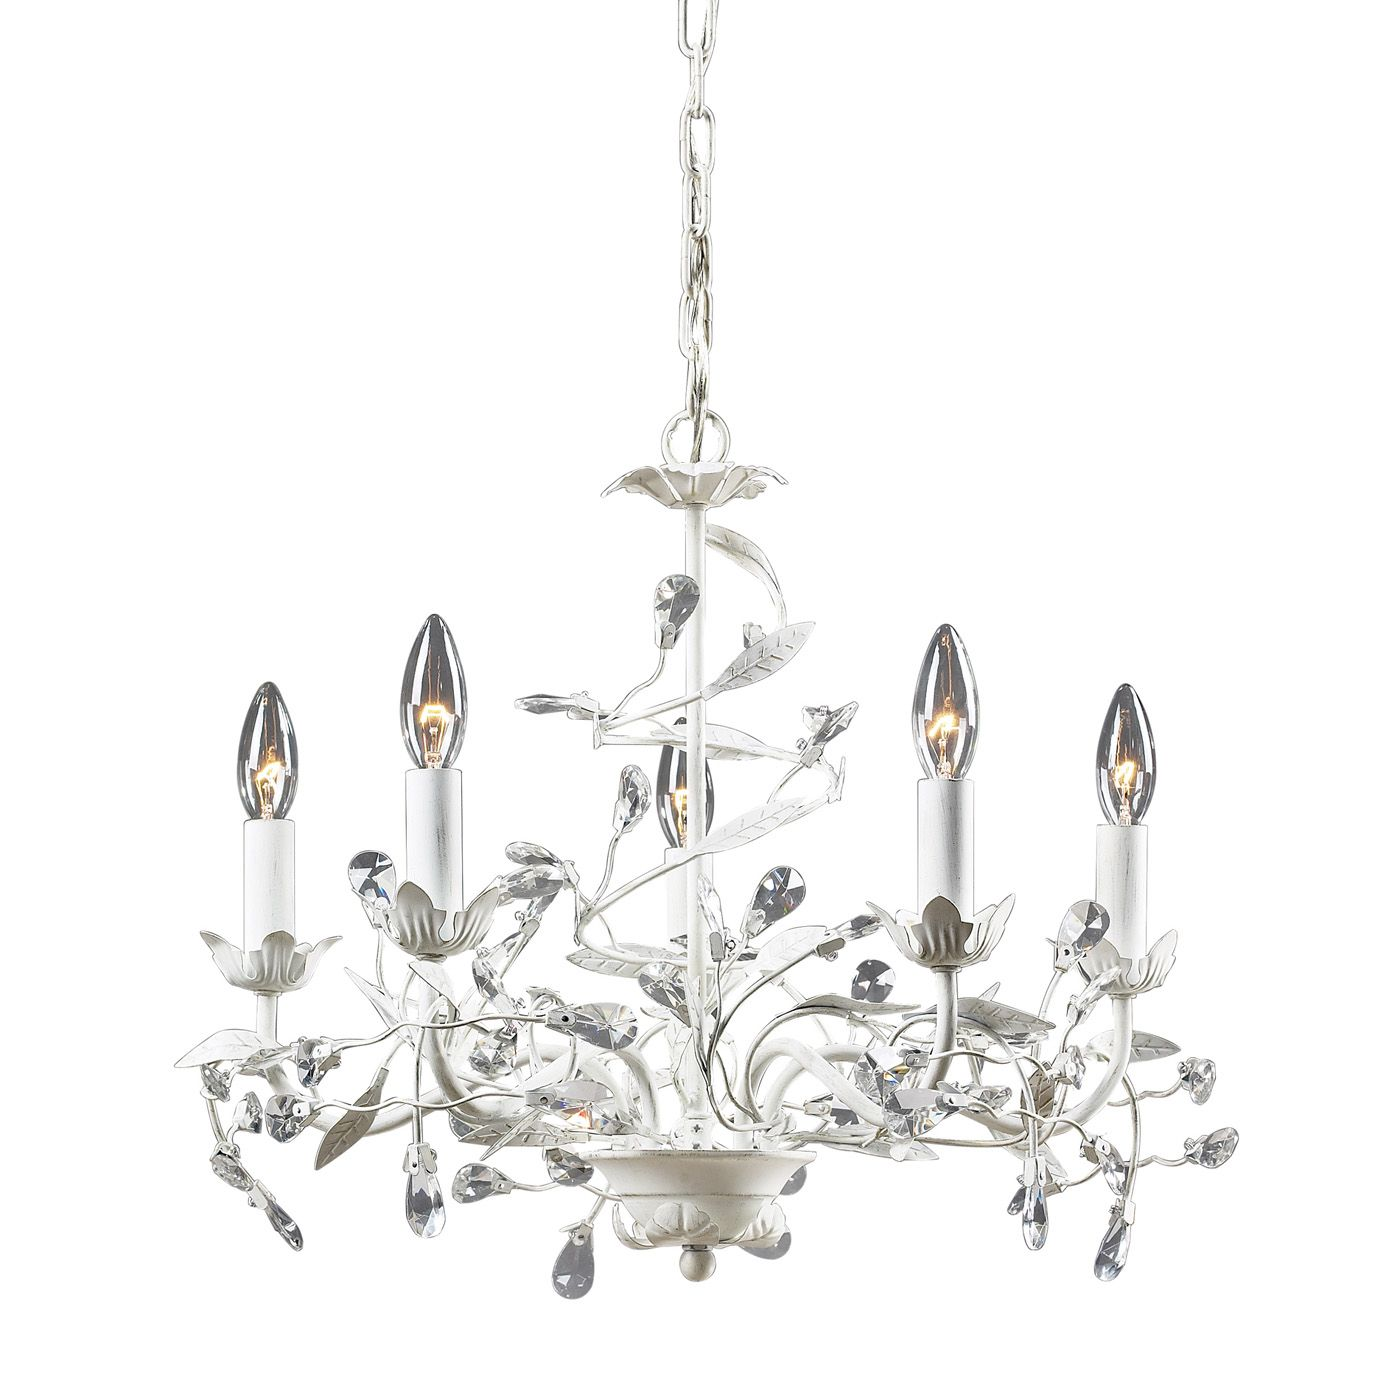 Shop elk lighting 181135 5 light circeo chandelier at atg stores shop westmore lighting 5 light circeo chandelier at lowe canada find our selection of chandeliers at the lowest price guaranteed with price match off arubaitofo Images